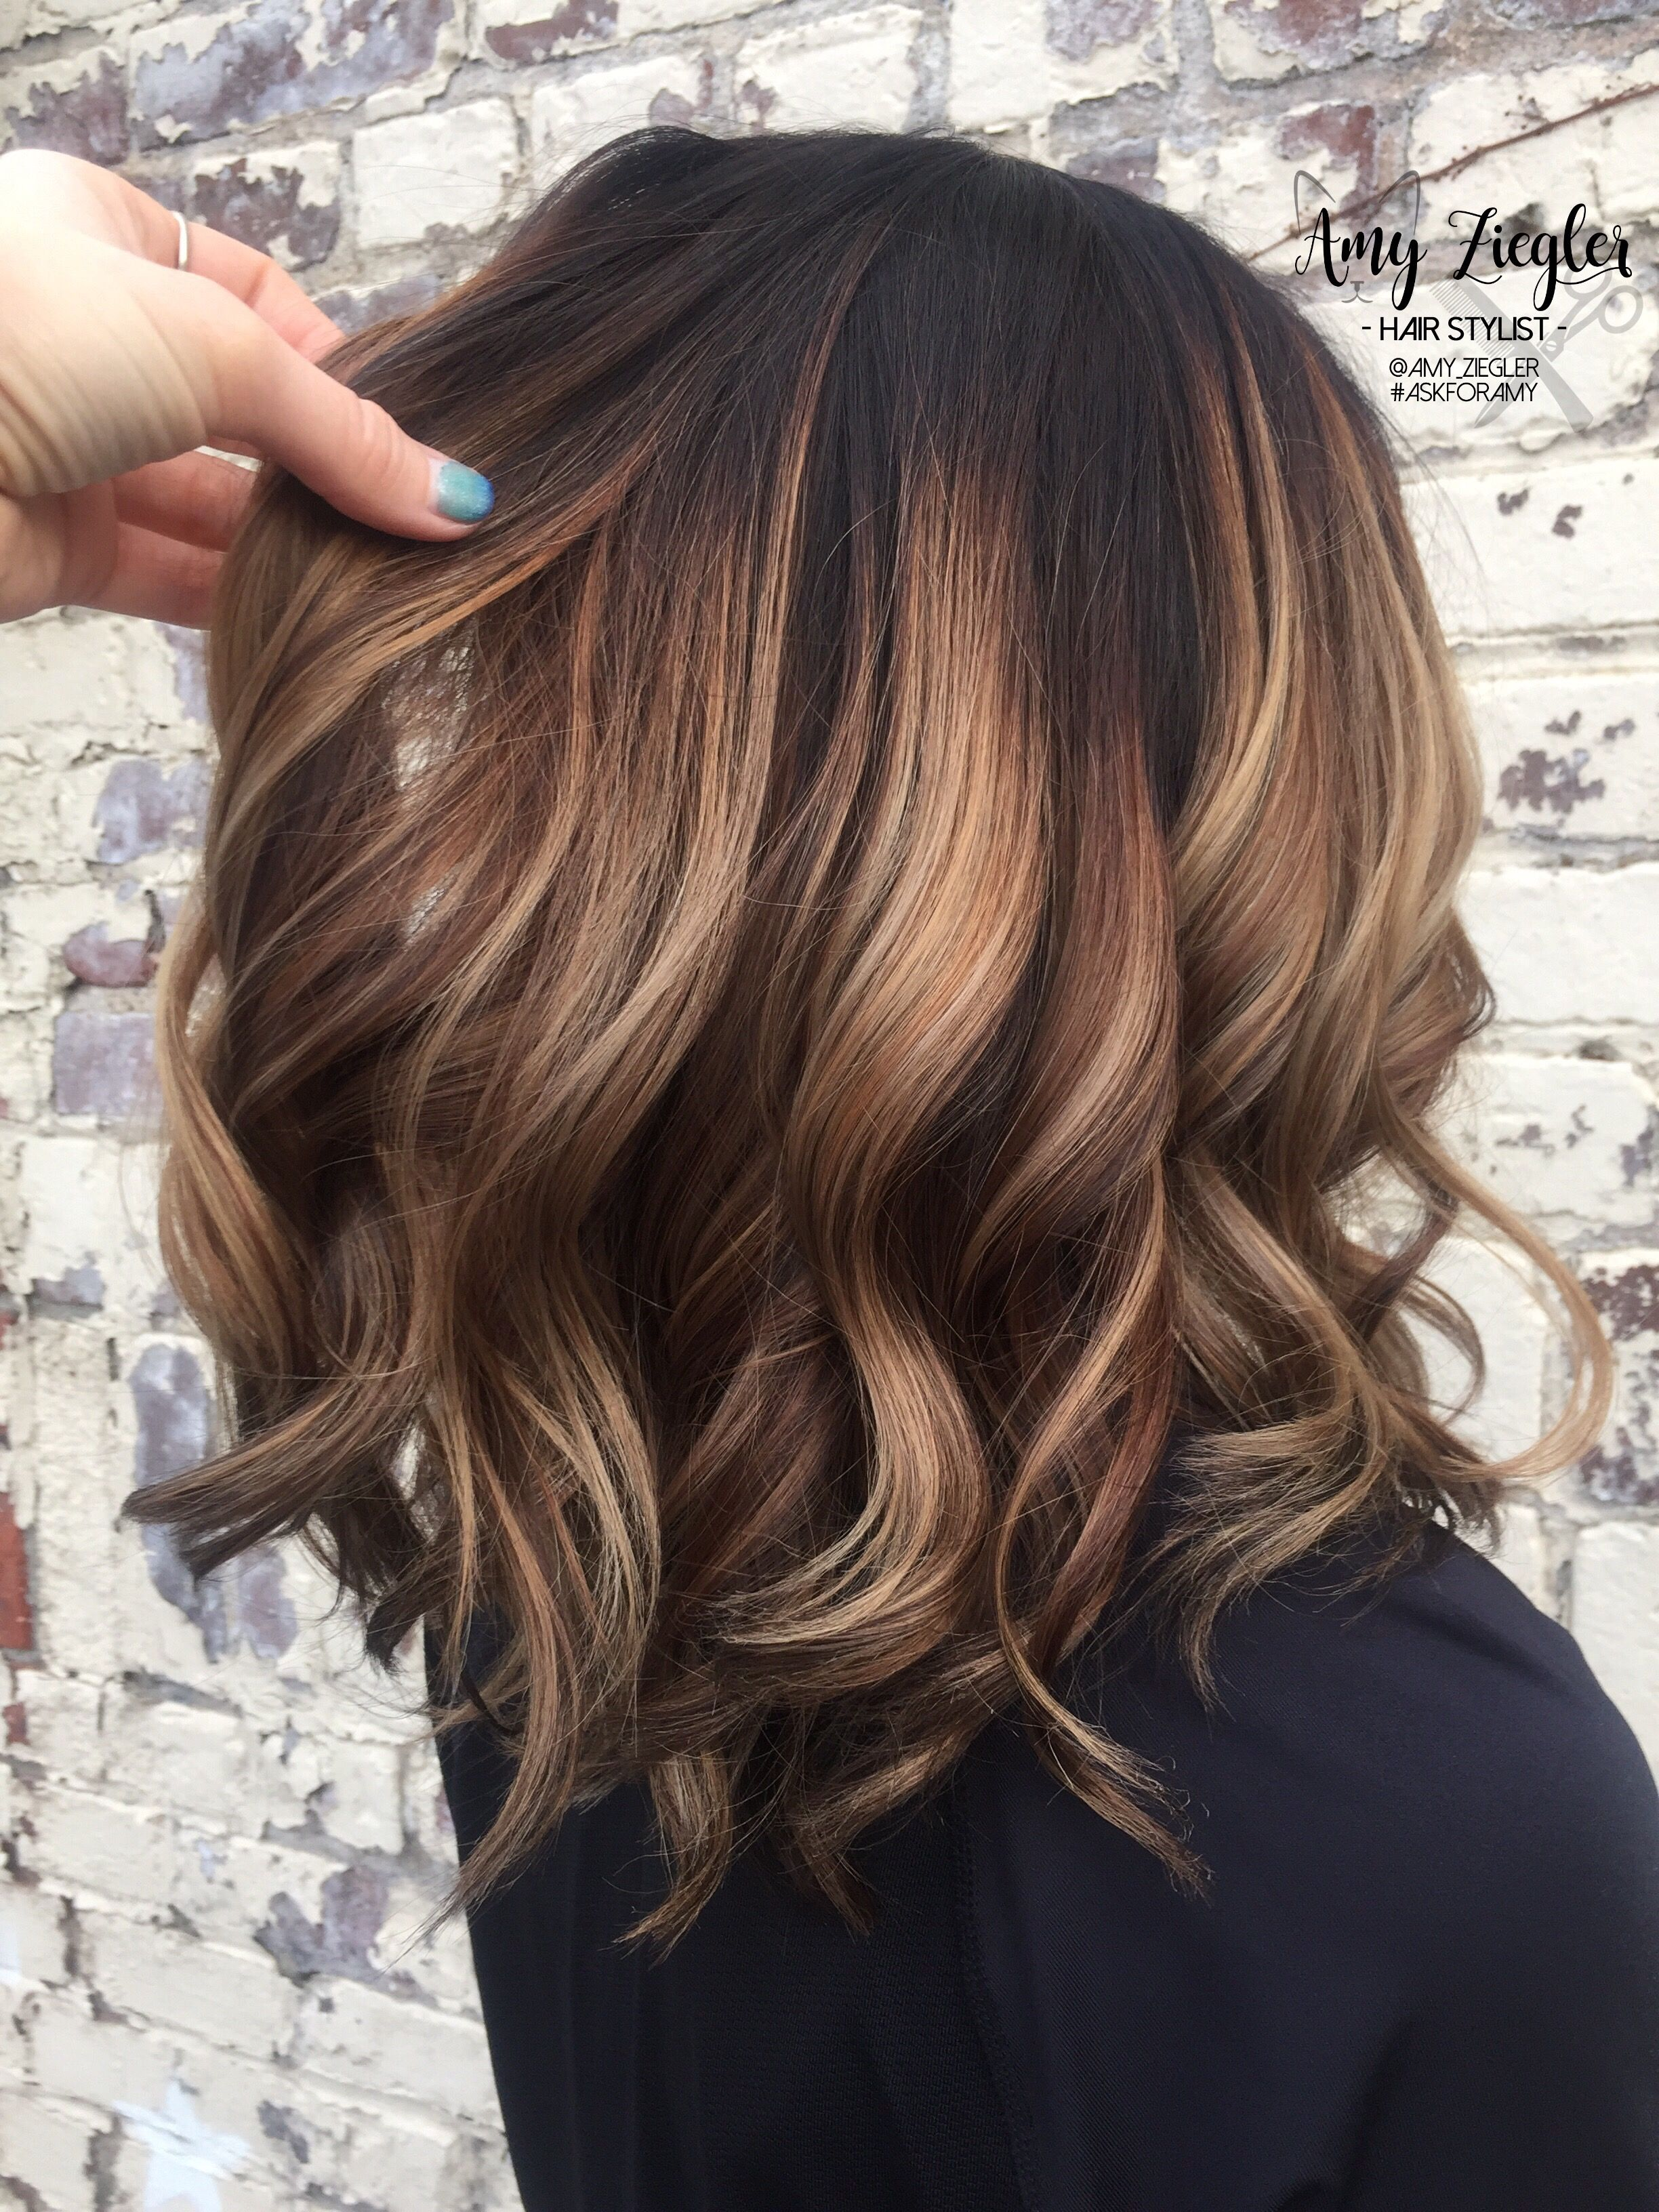 Chunky Blonde Balayage On Dark Hair By Amyziegler Askforamy